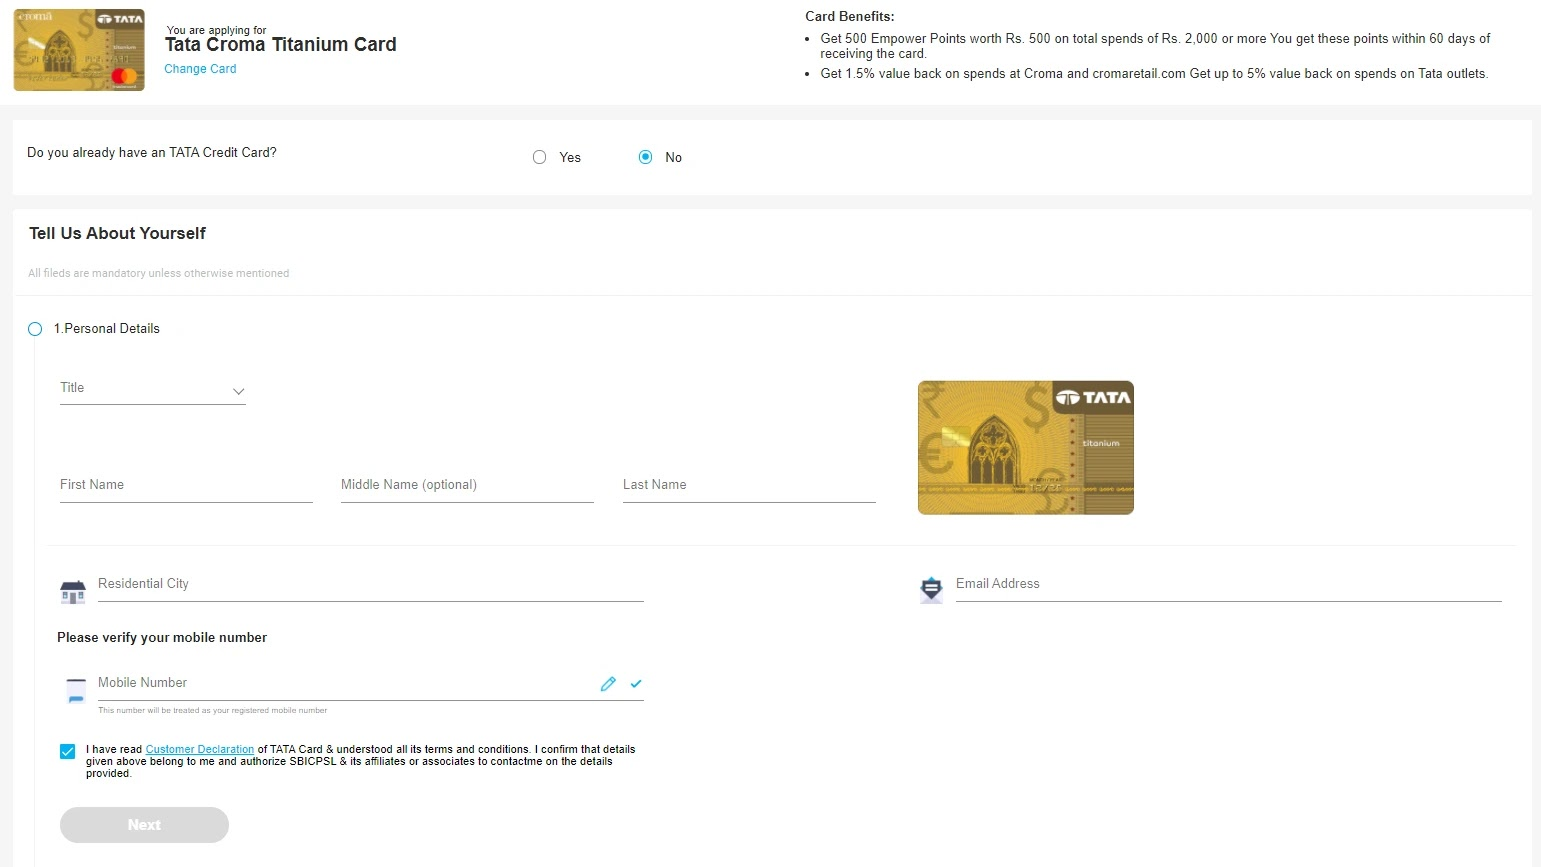 How to apply for SBI TATA Croma Titanium Card